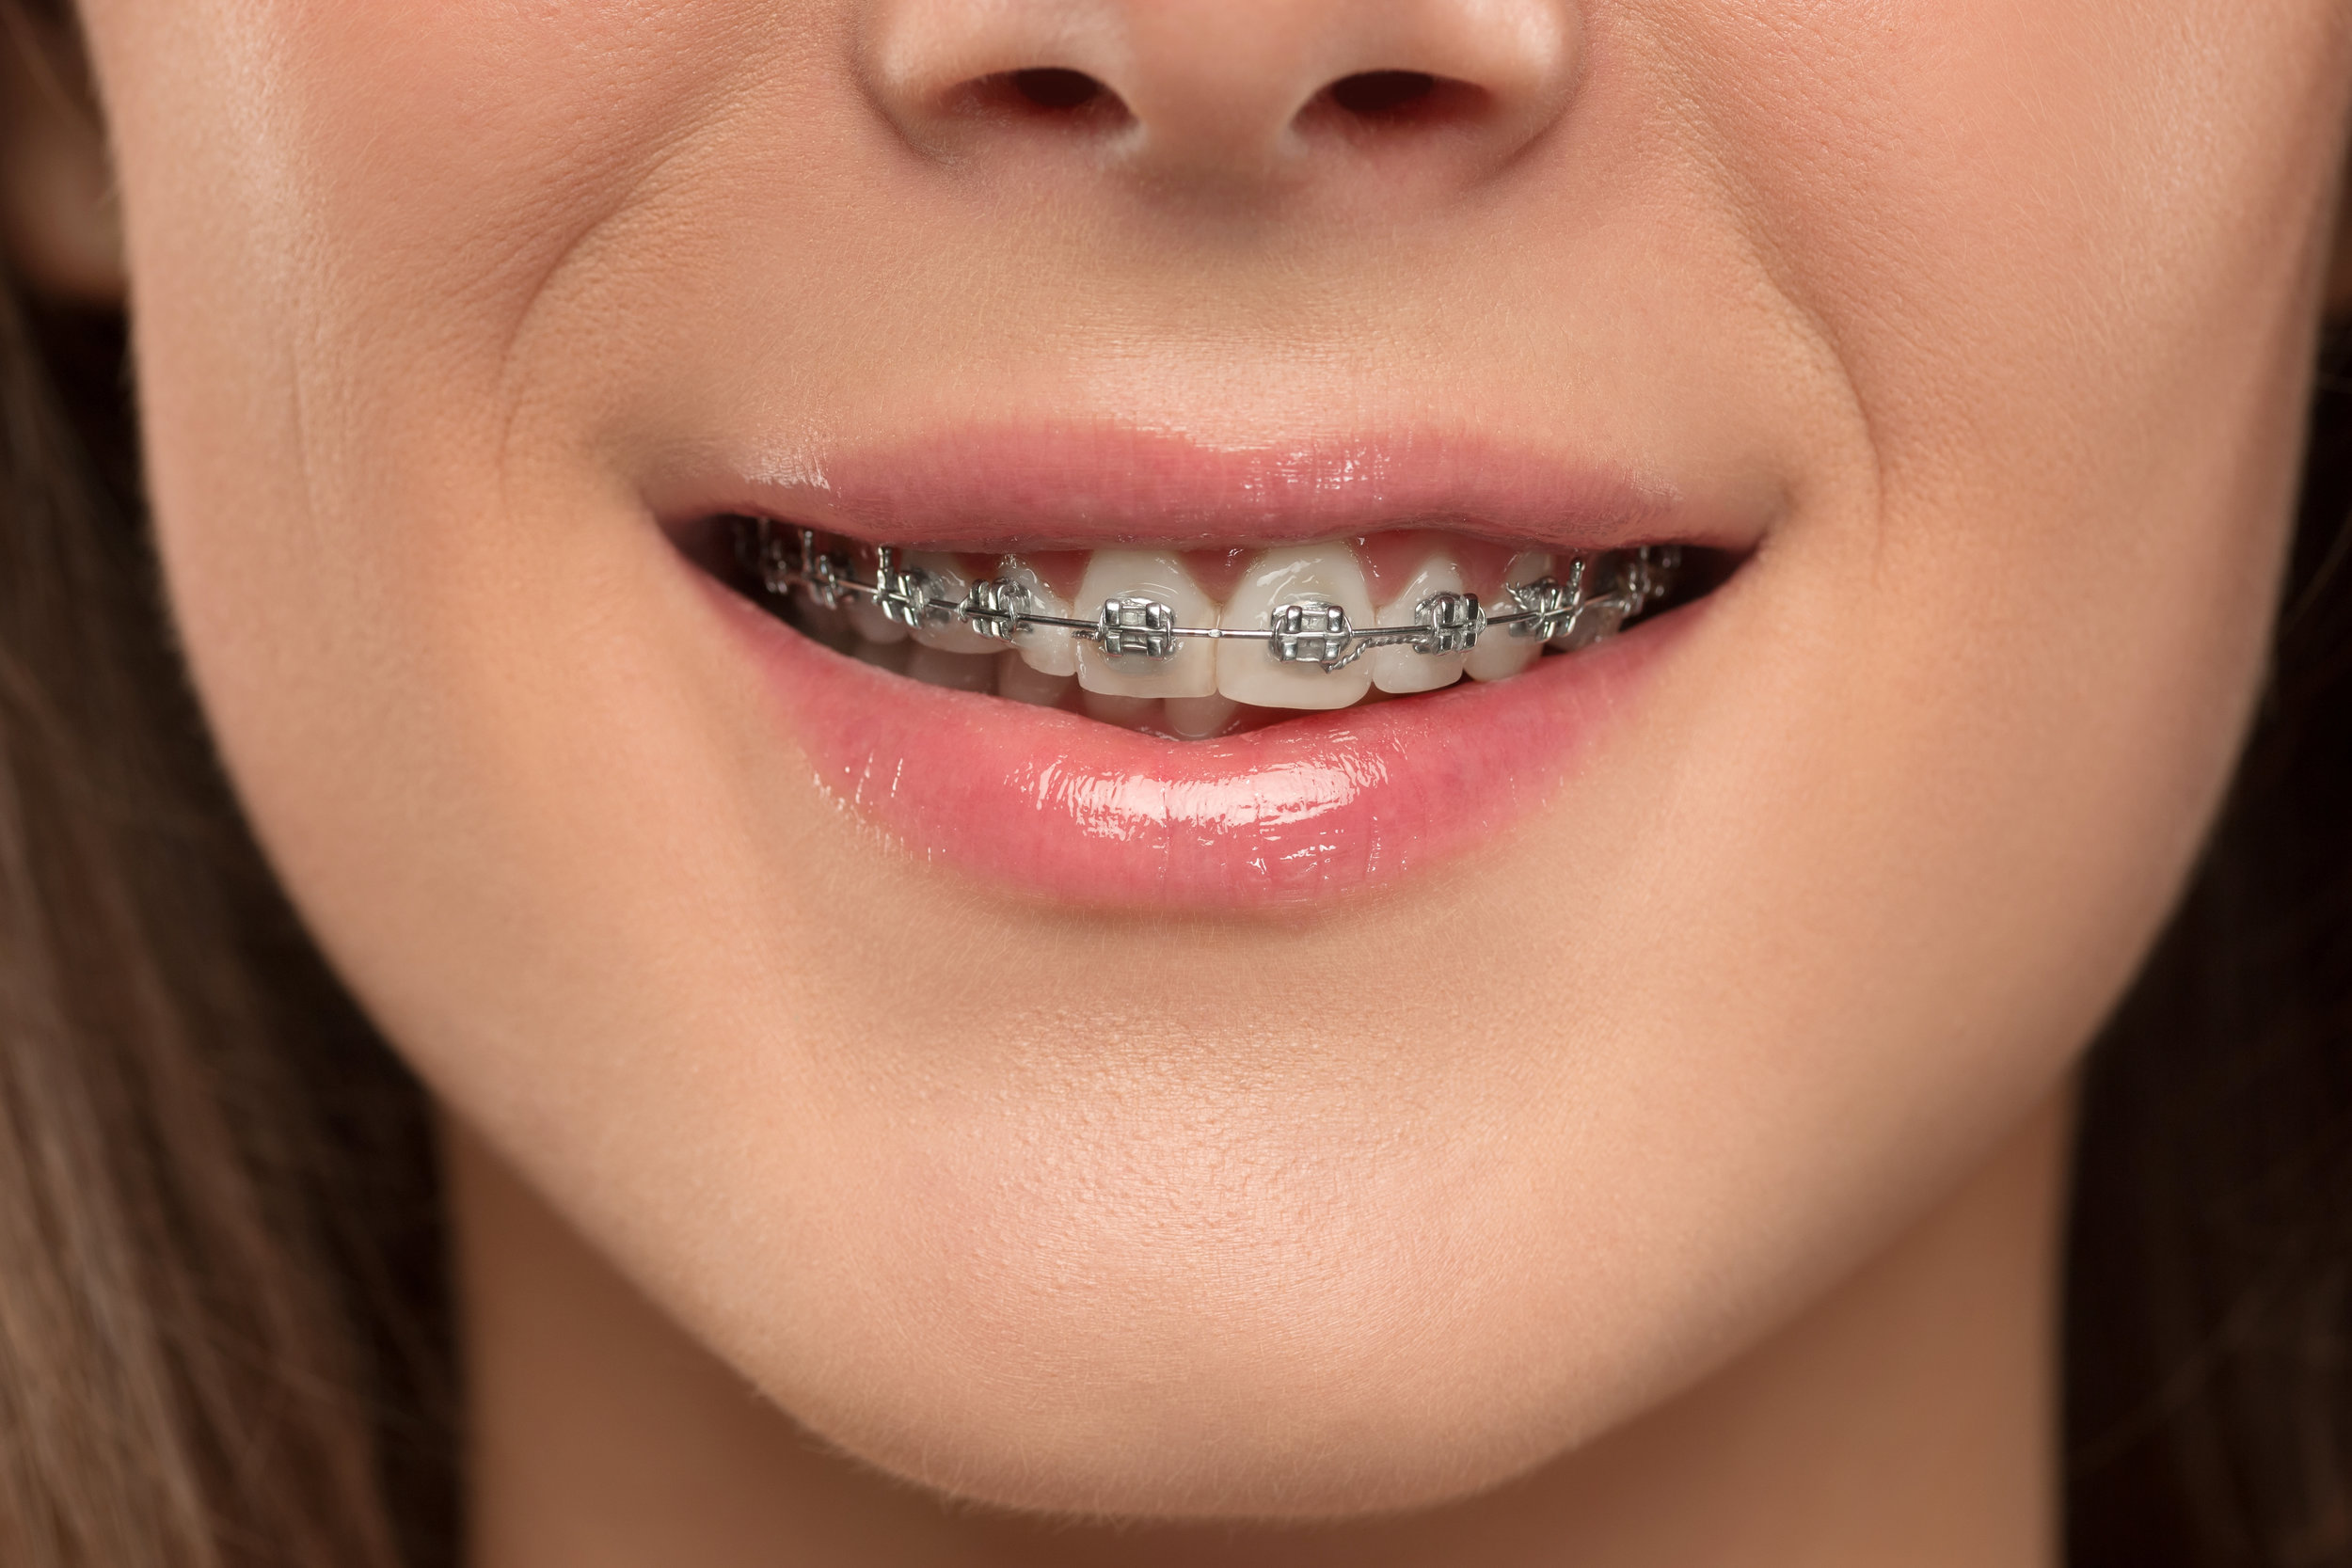 Orthodontics - -Clear and Metal Brackets-Invisalign-TMJ Splints-Night Guards-Clear and Traditional Retainer-Habit-breaking appliances-Palatal Expanders and Space Maintainers